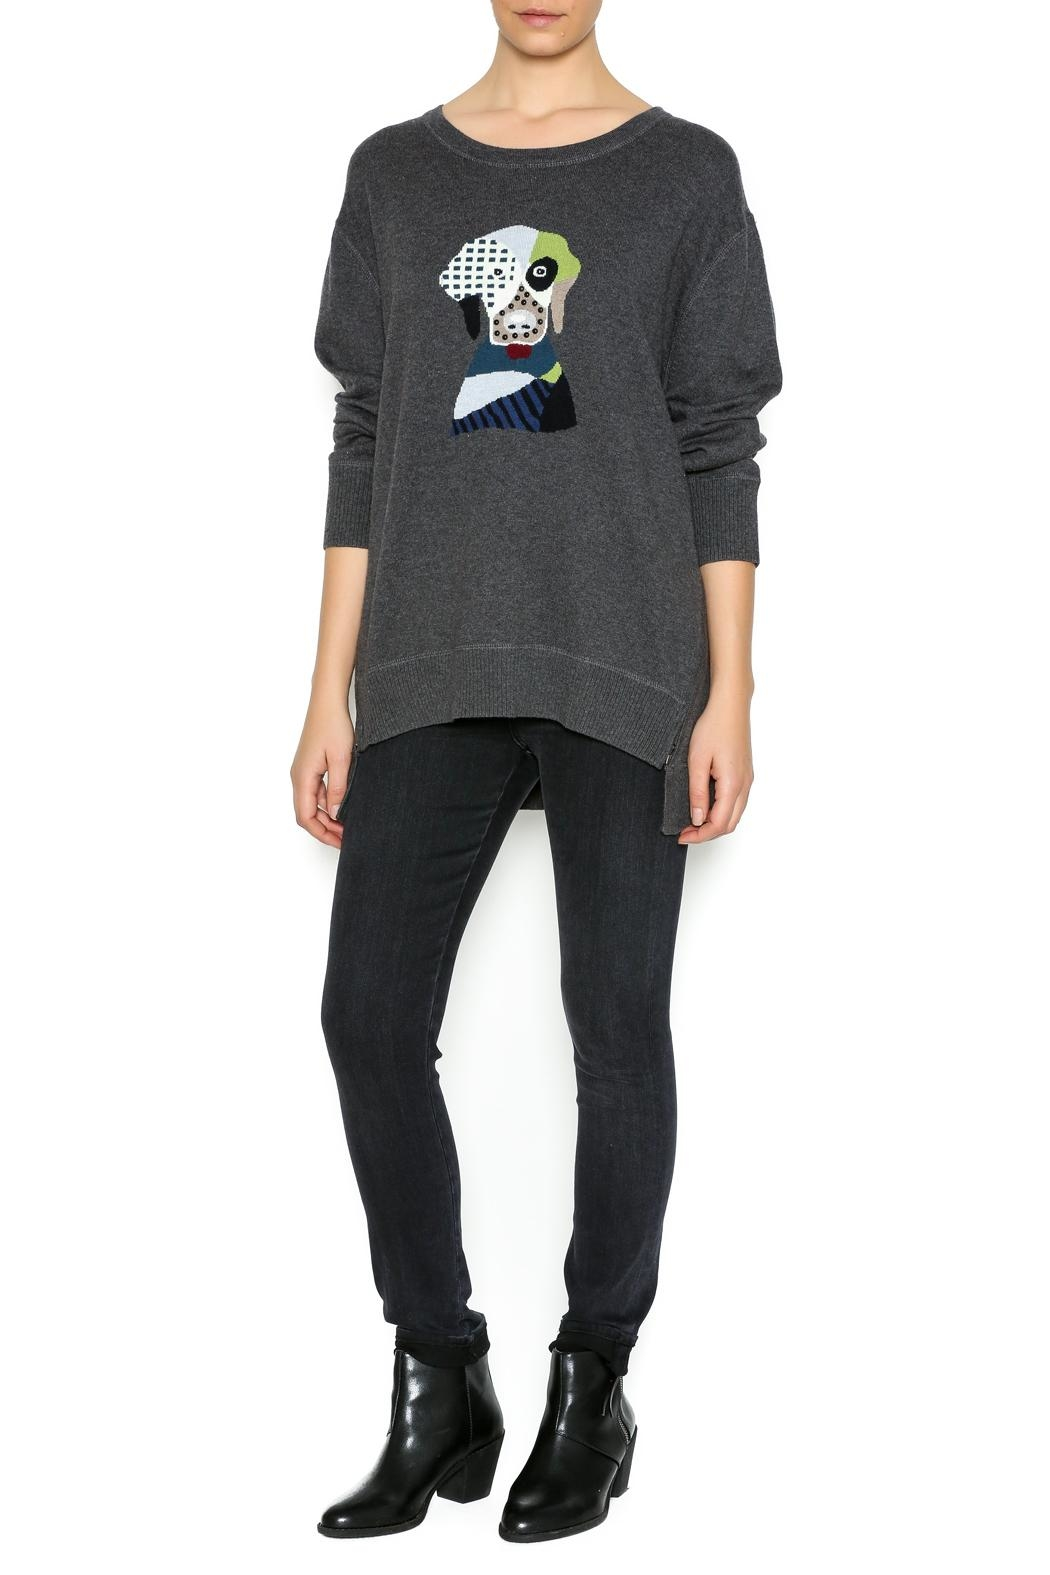 Lisa Todd Fido Crew-Neck Sweater - Side Cropped Image